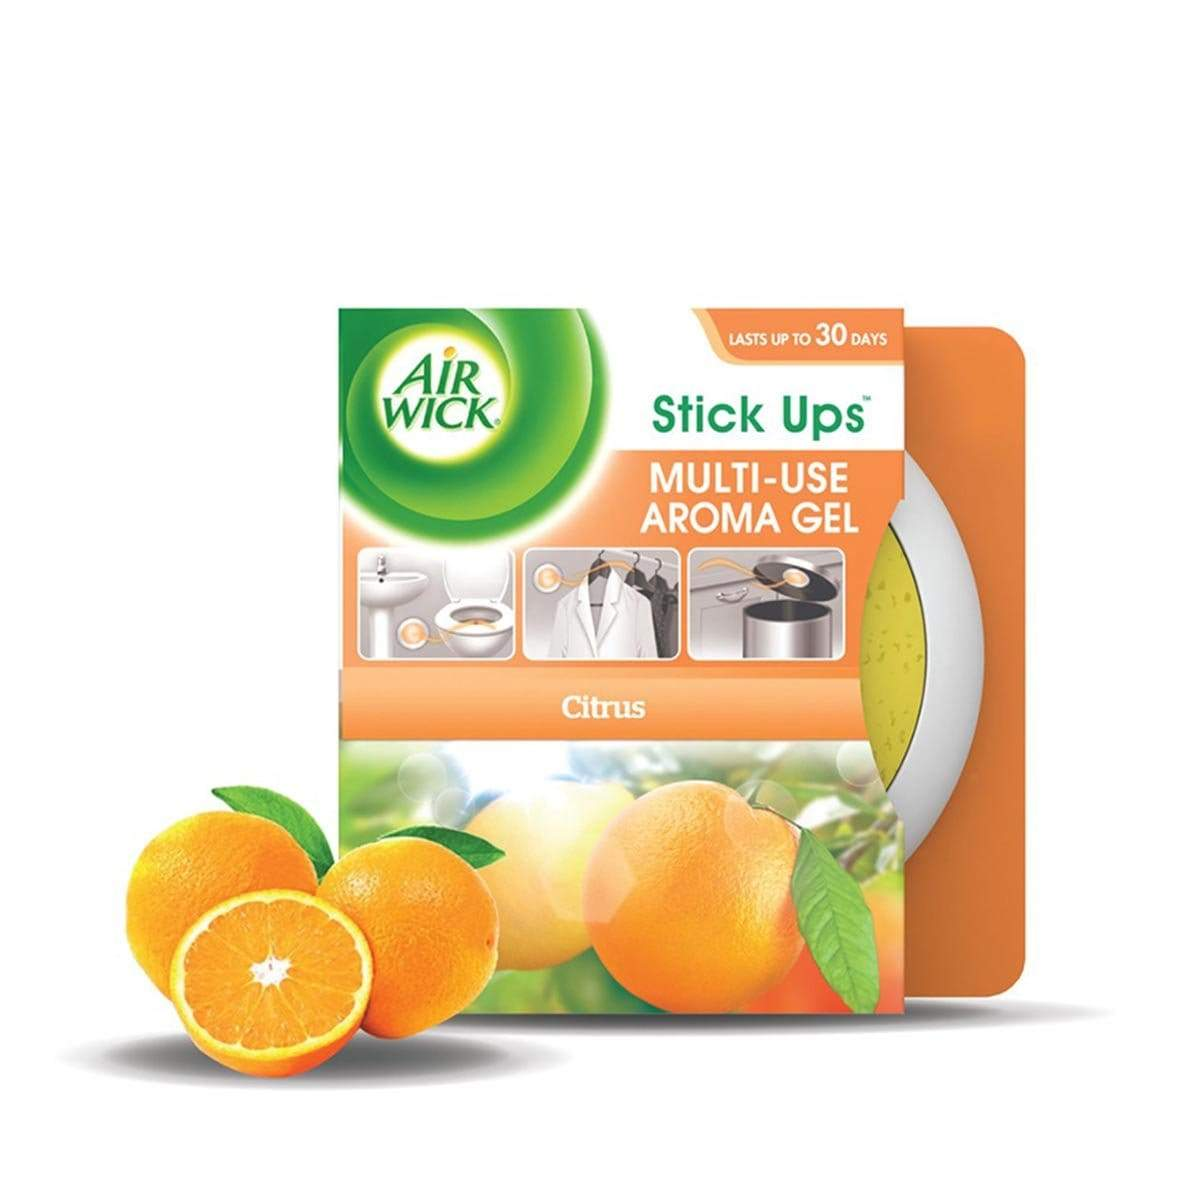 Air Wick Stick Ups Gel - Citrus (30g)